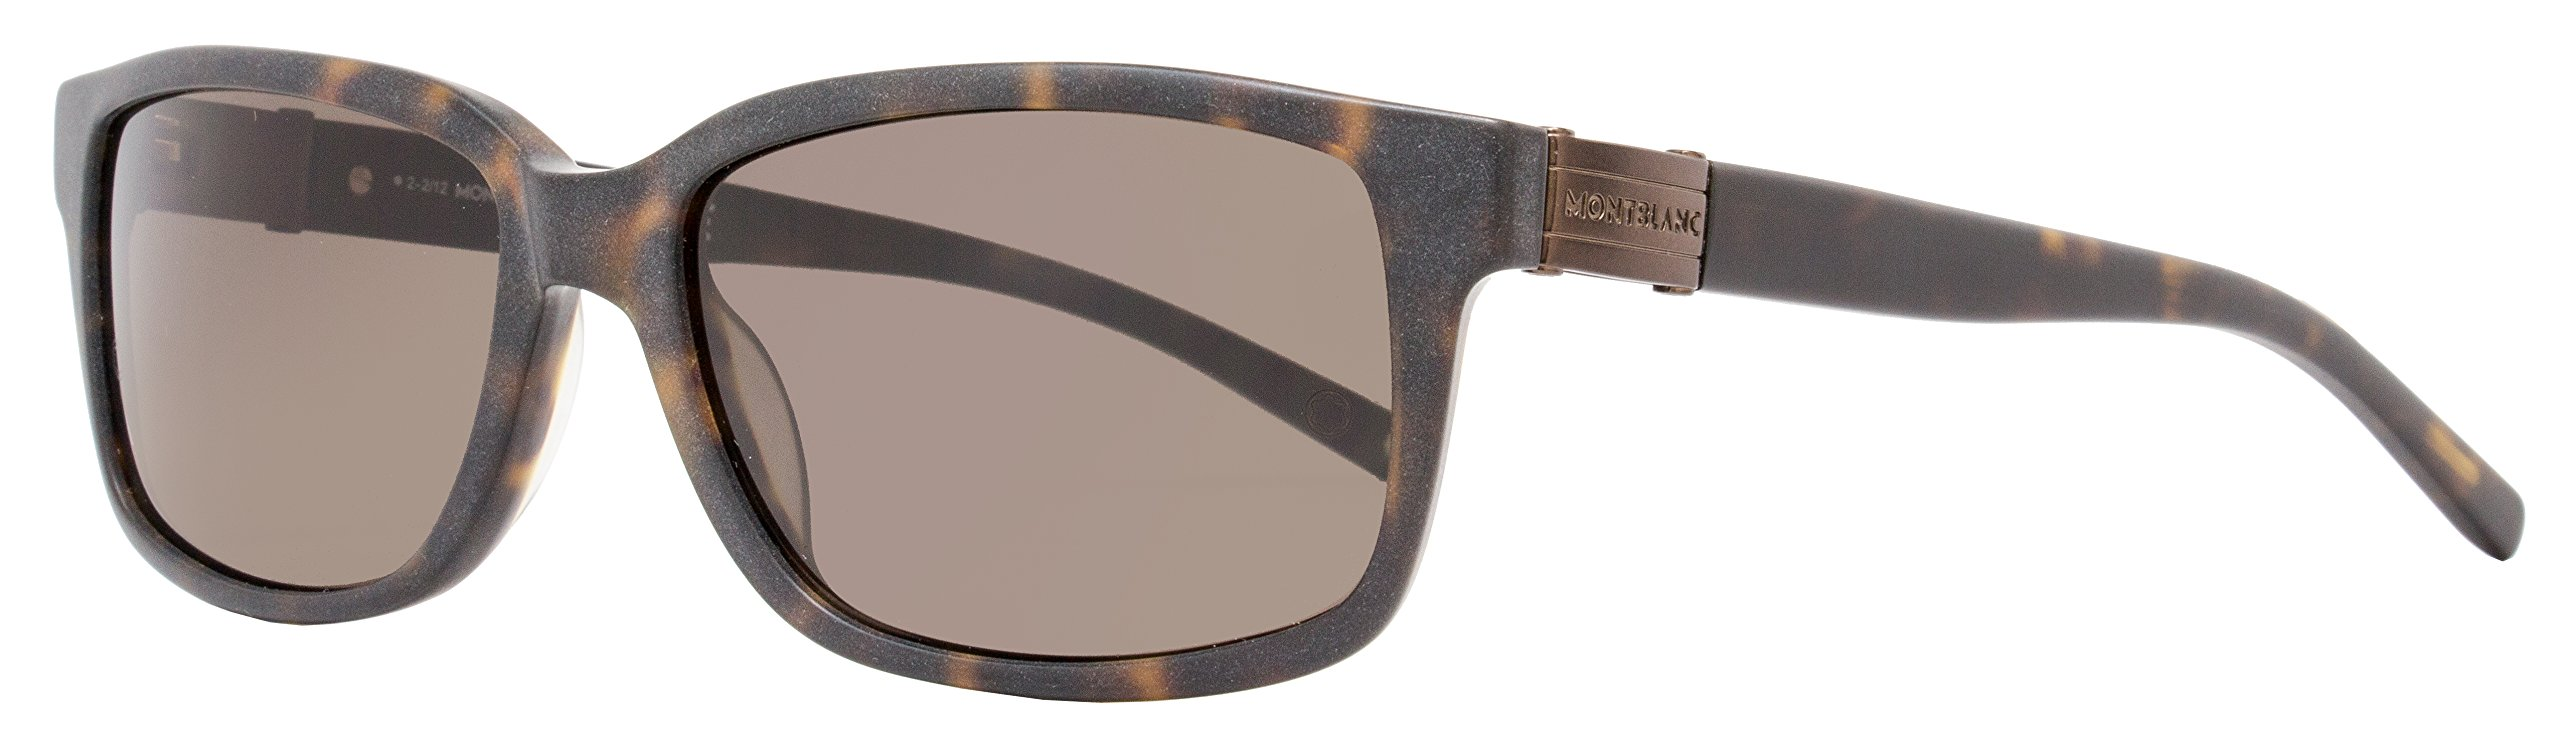 Mont Blanc MB405S5852J Wayfarer Sunglasses,Dark Havana,58 mm by MONTBLANC